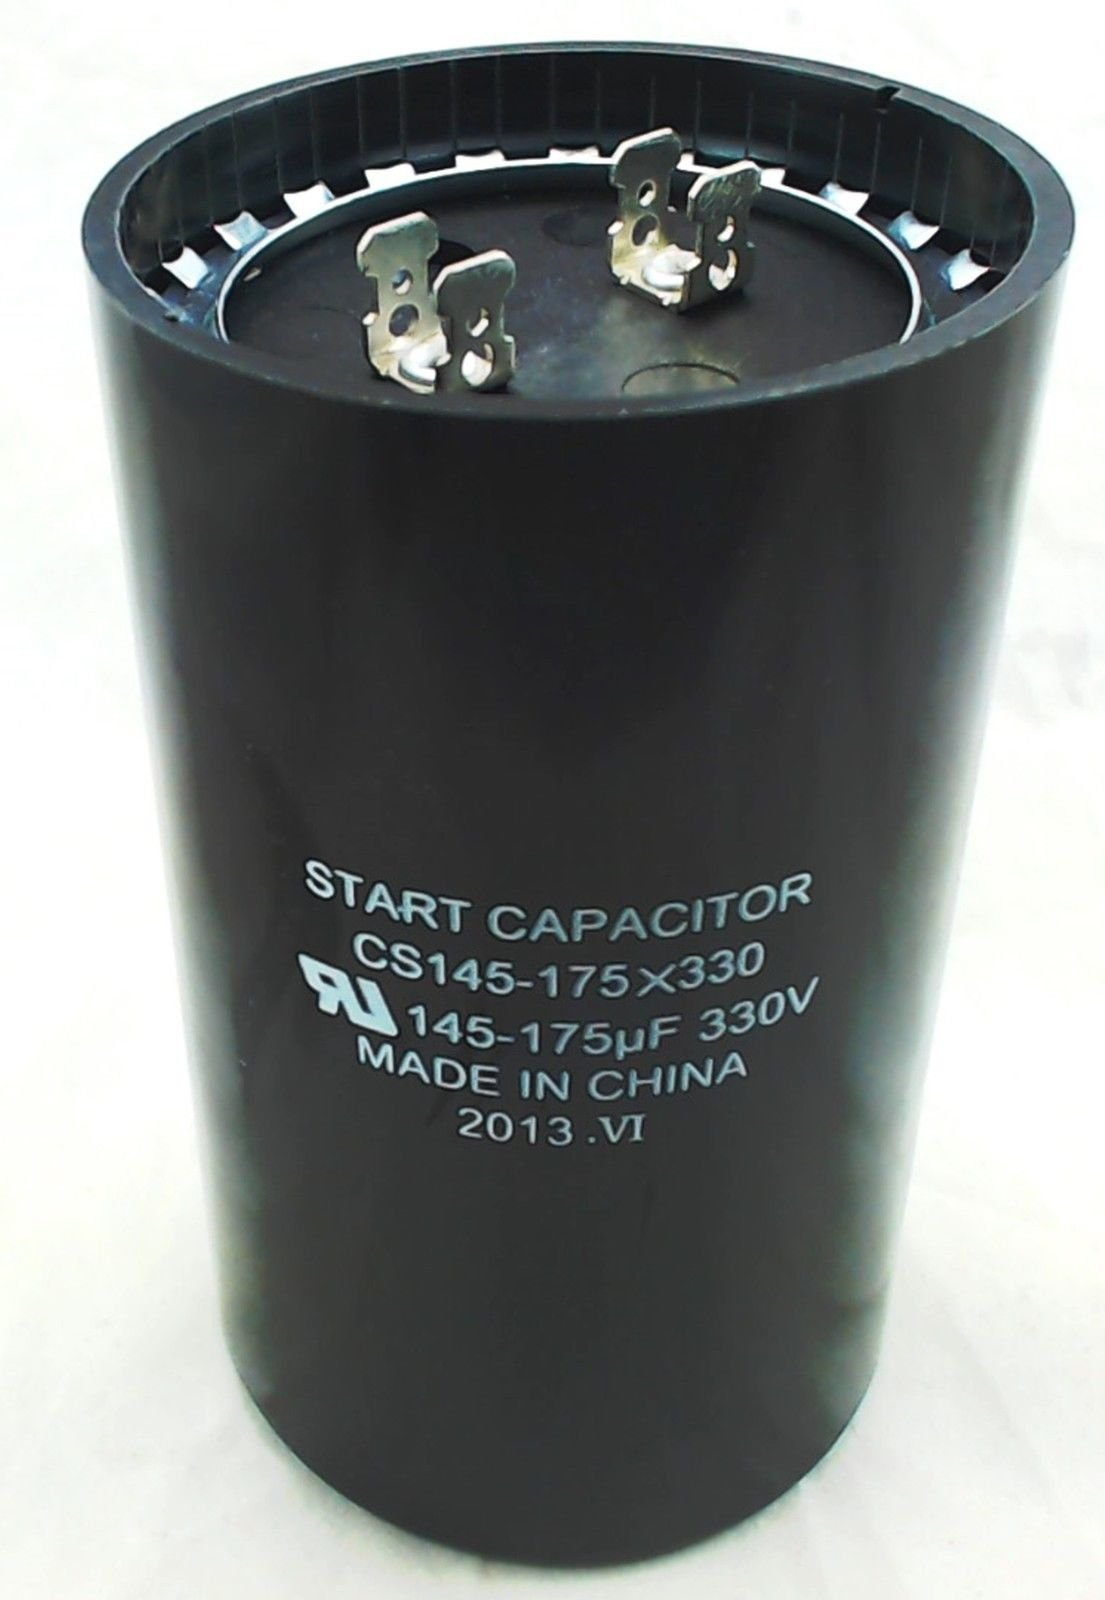 SUPCO CS145-175X330 Start Capacitor, 4.375'' Height, 2.56'' Diameter, 145-175 Mfd, 330V by Supco